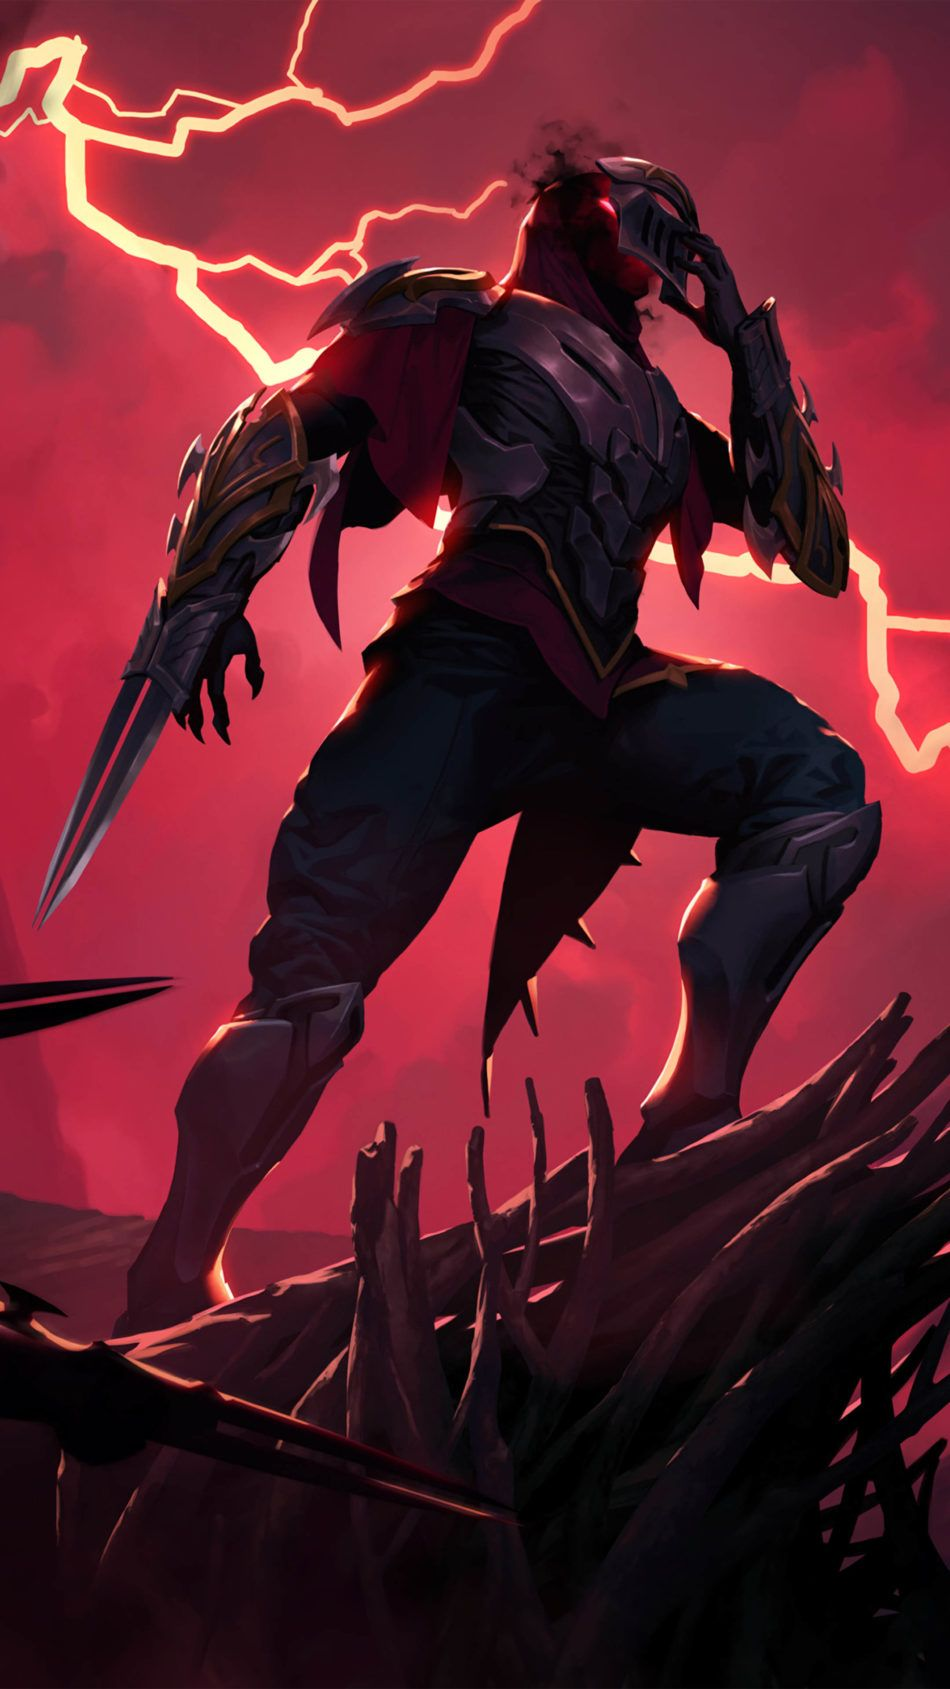 Zed League Of Legends 4k Ultra Hd Mobile Wallpaper In 2020 Lol League Of Legends League Of Legends League Of Legends Characters